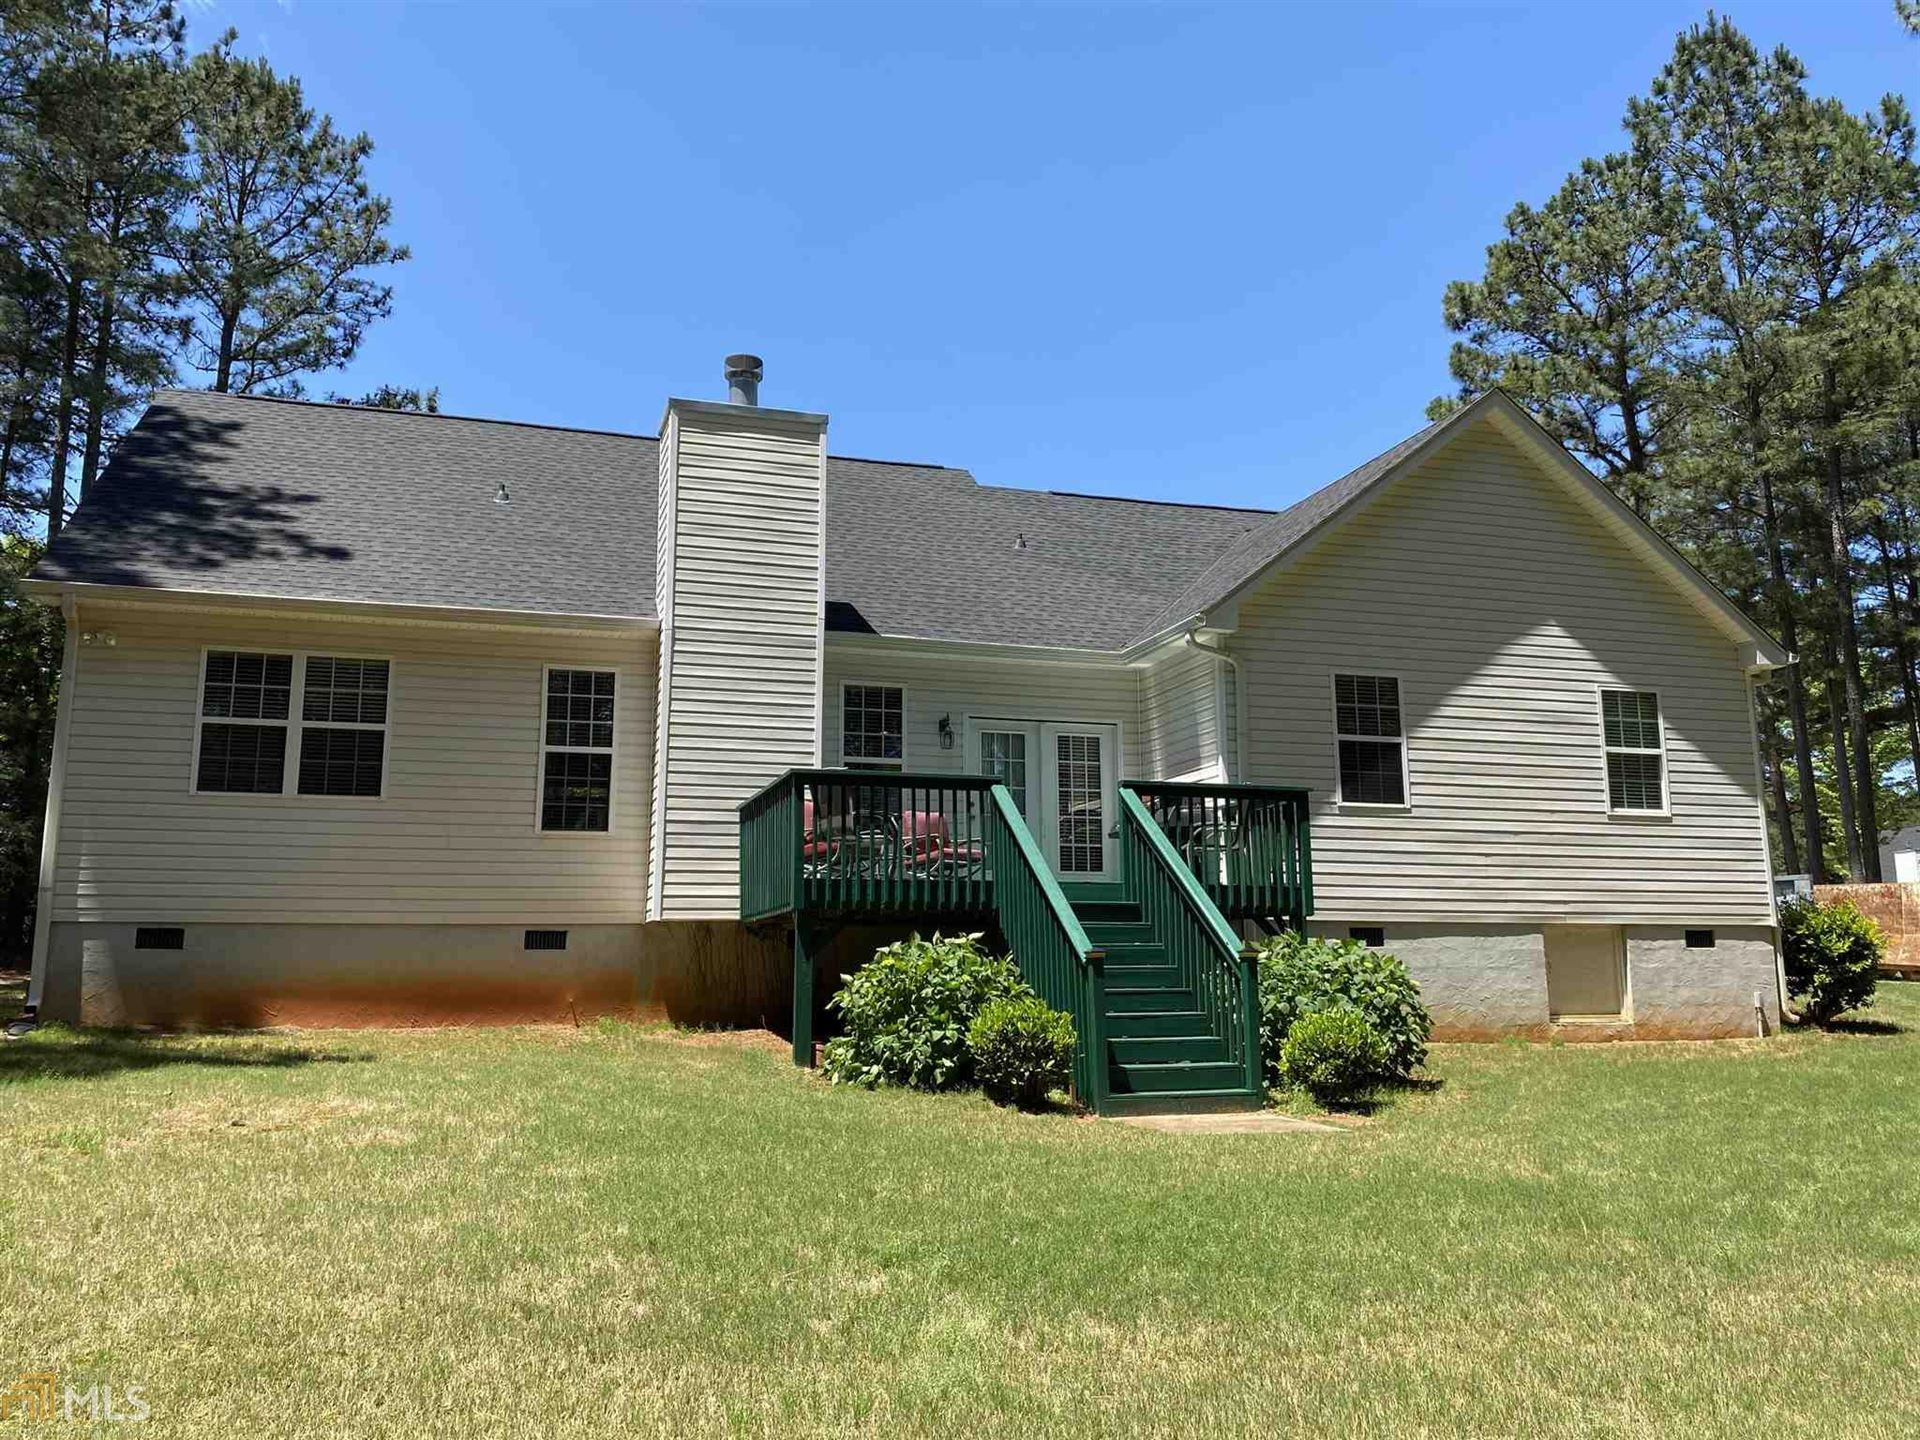 Photo of 532 Kaitlin Circle, Griffin, GA 30223 (MLS # 8975598)